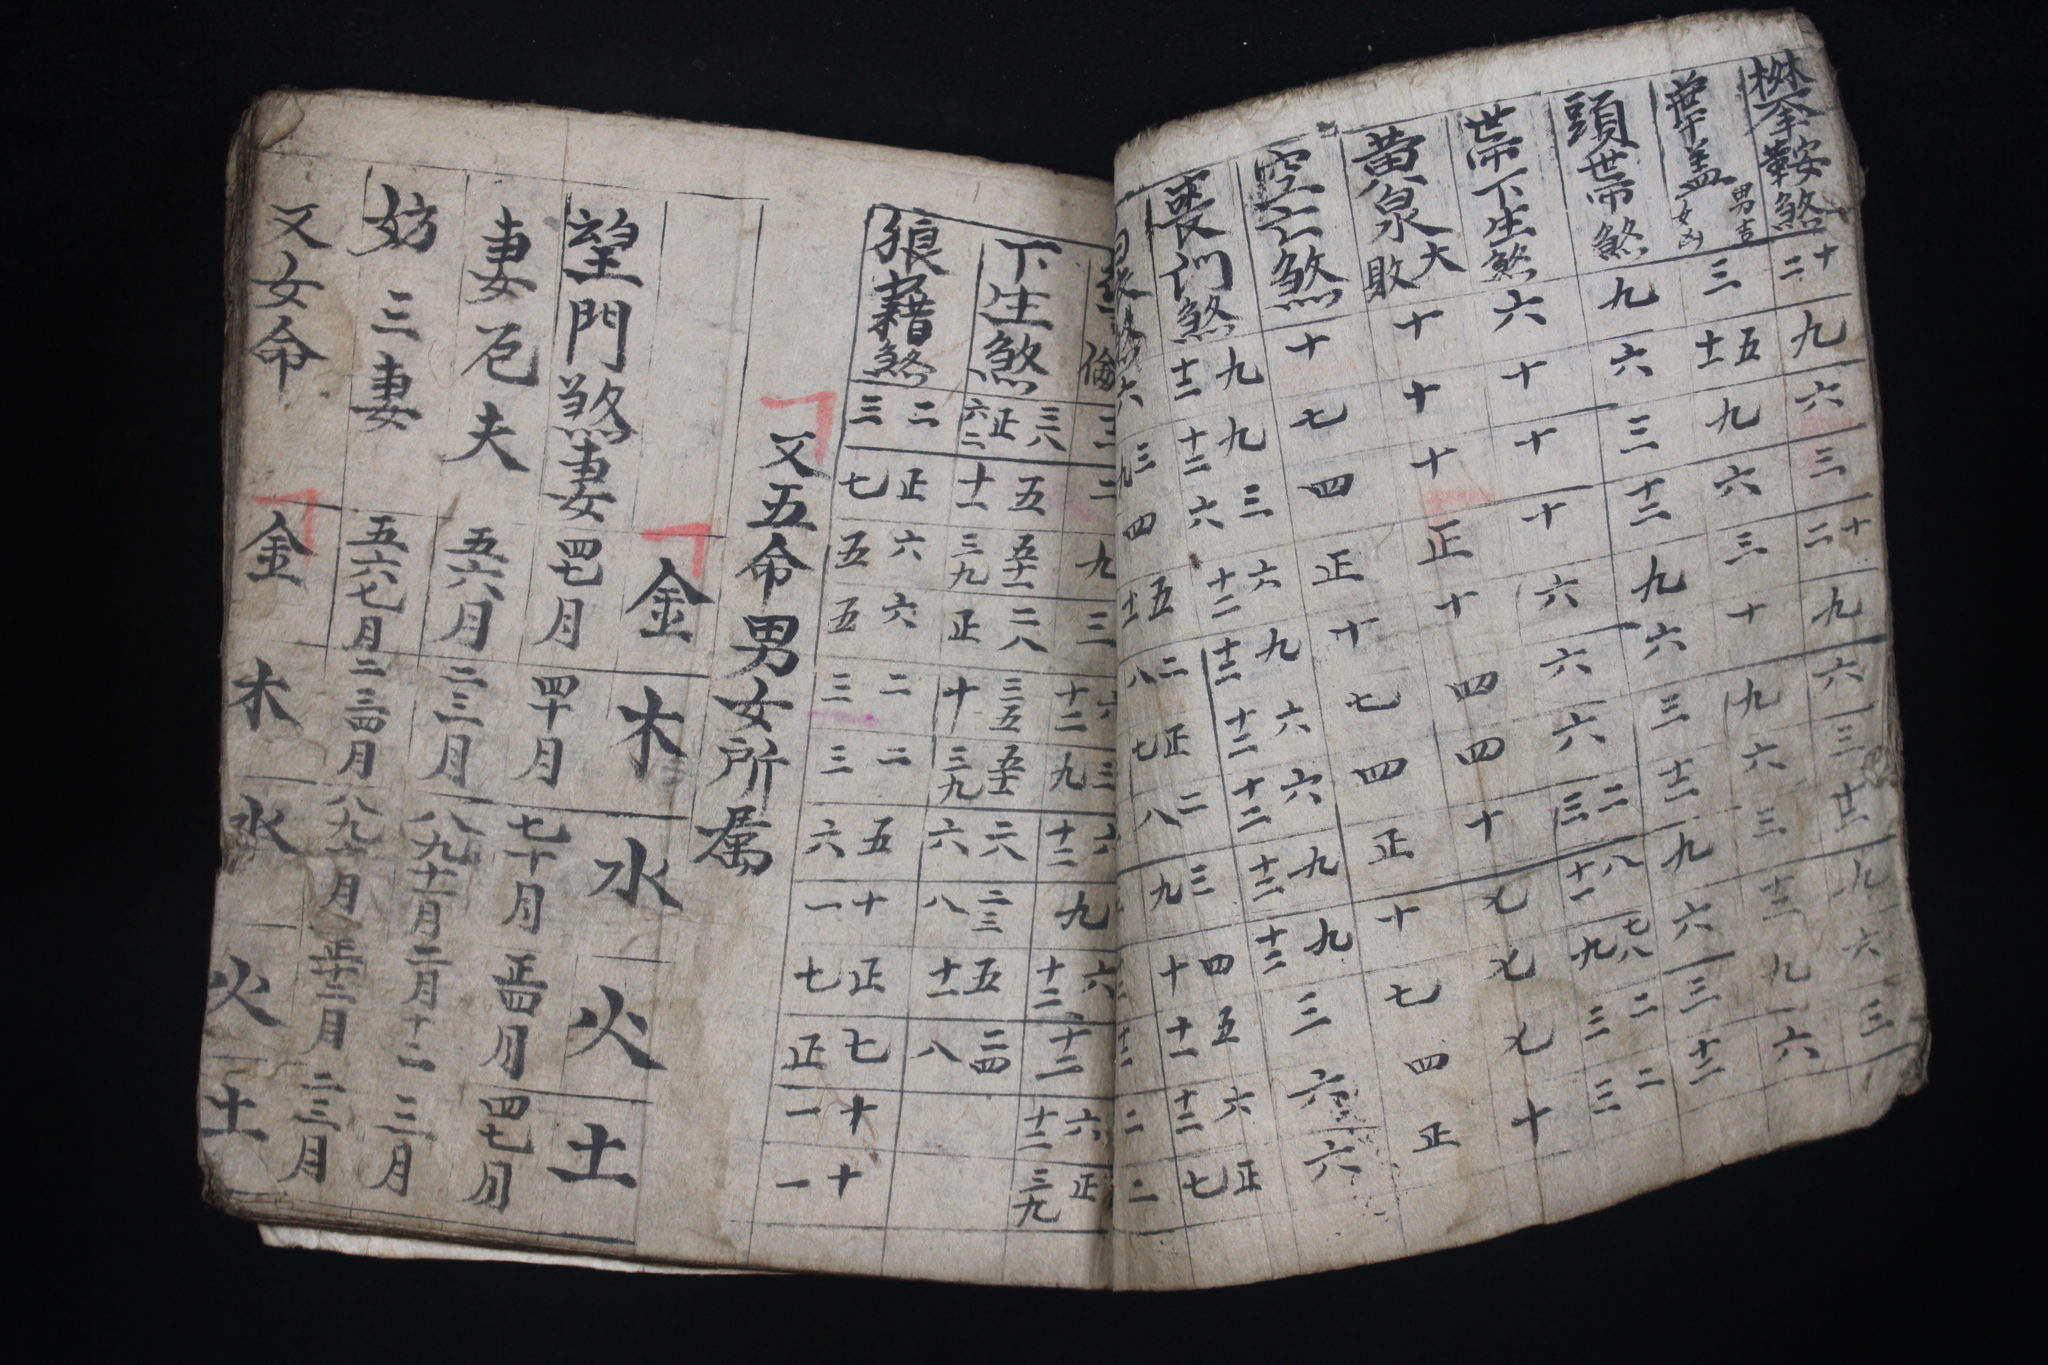 "Inside Detail of Shaman's Personal Instruction Book, Cao Bang province, Vietnam, Early 20th c, Ink on handmade mulberry paper (tapa), Written in Nom (Chinese characters adapted to Vietnamese), books are an integral part of a shaman's repertoire. They range from explanations of various rituals and use of objects, to astrology, history, songs, laws, etiquette, children's tales, hunting practices, formulas, spells and Feng Shui. Shaman make their own books to help store their knowledge therefore no two are alike and a high level shaman will have a large library. 9 ½"" x 8 ½"" x ¾"", $850."